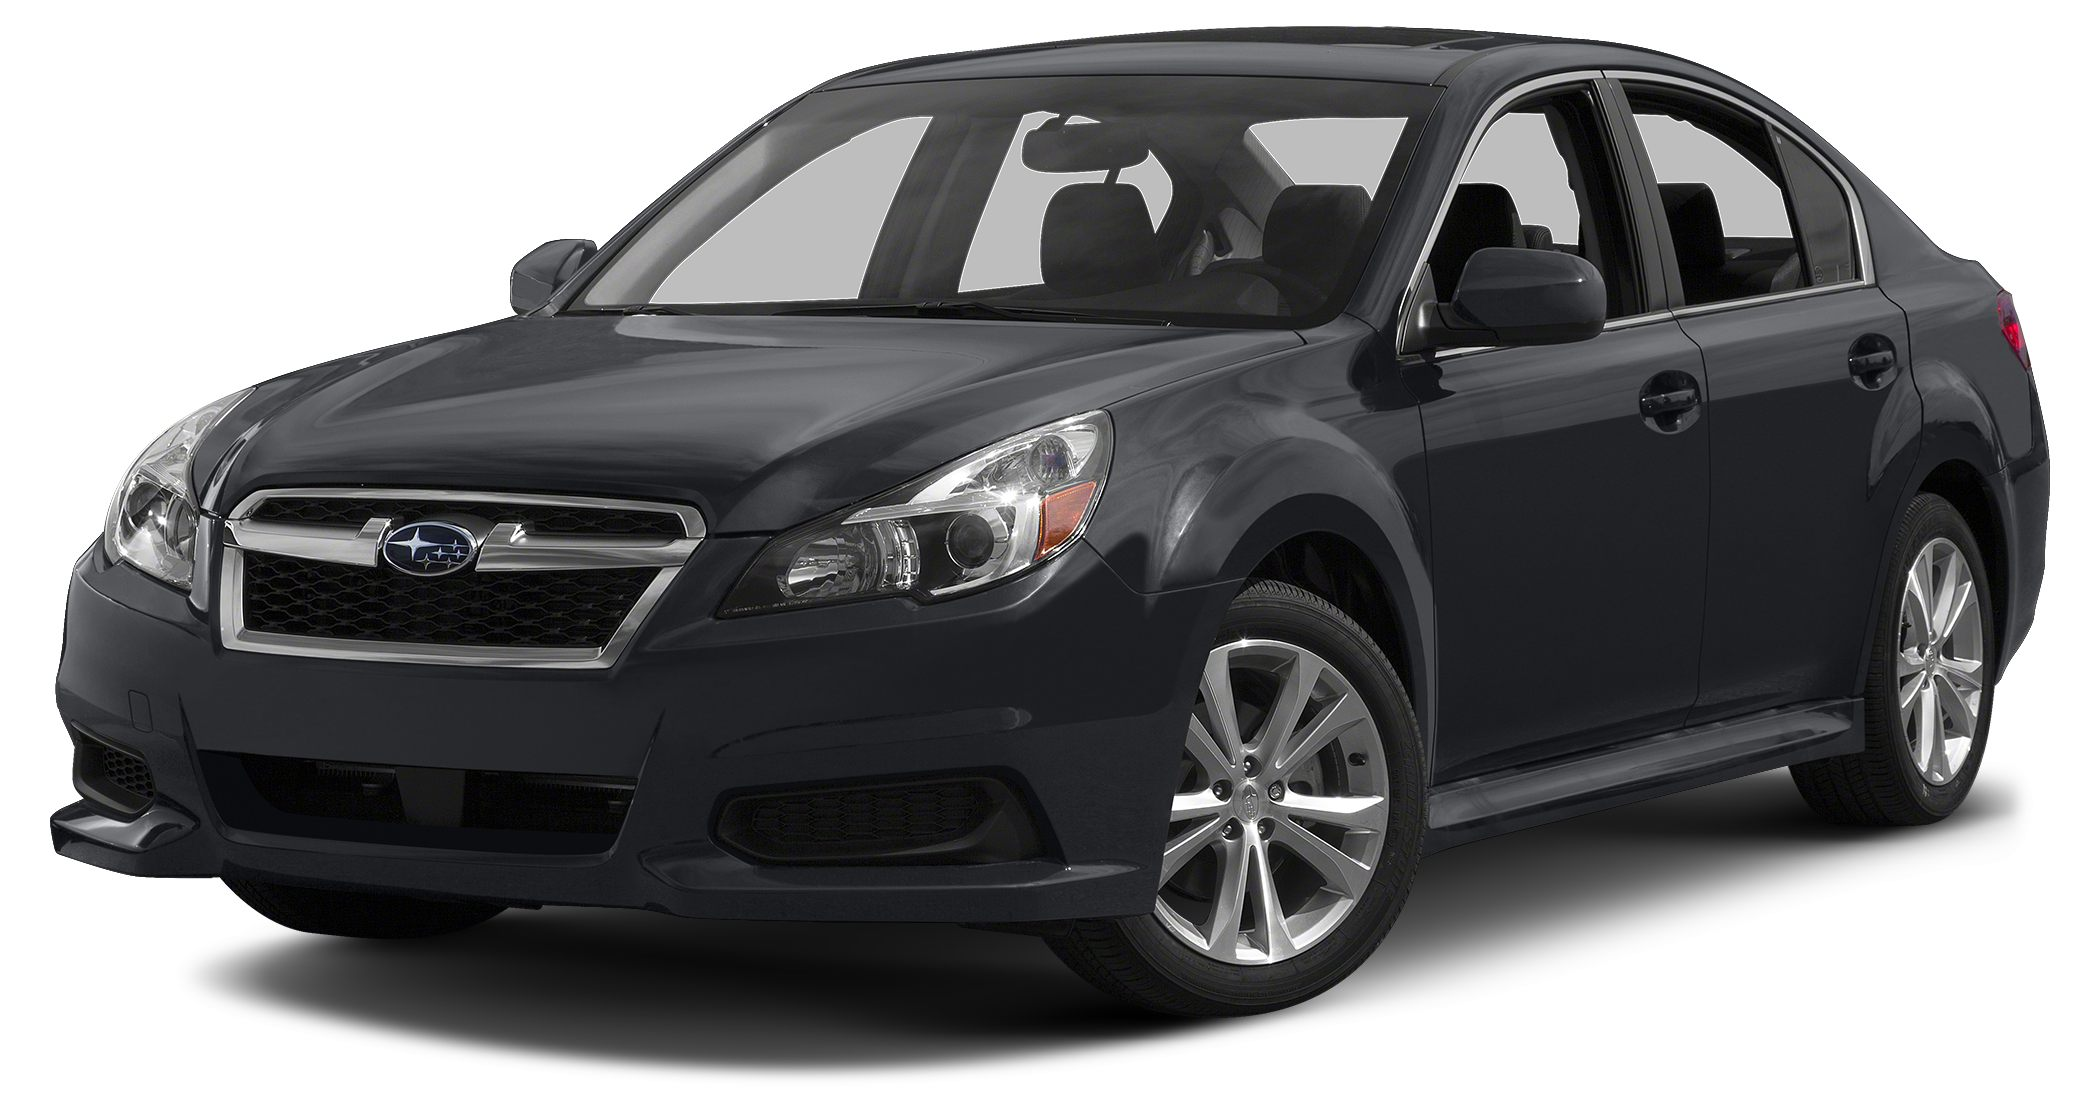 2013 Subaru Legacy 36R Limited  WHEN IT COMES TO EXCELLENCE IN USED CAR SALESYOU KNOWYOURE